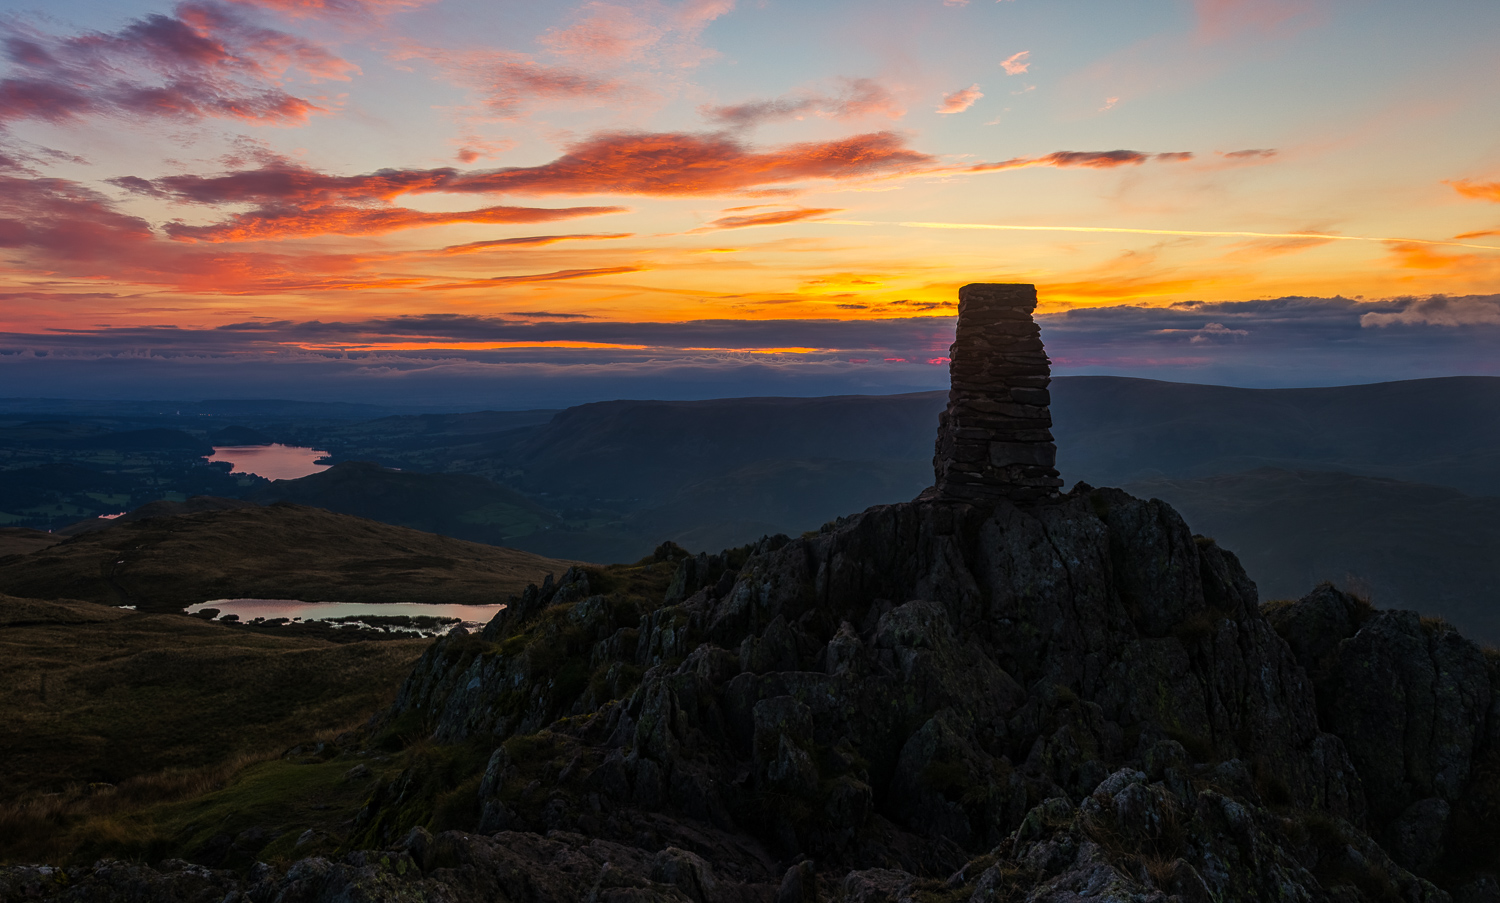 Sunrise from the top of Place Fell.  Canon 6d, Canon 24-70mm f/4L IS USM @24mm, f/11, ISO 100, 1/13s, CPL.